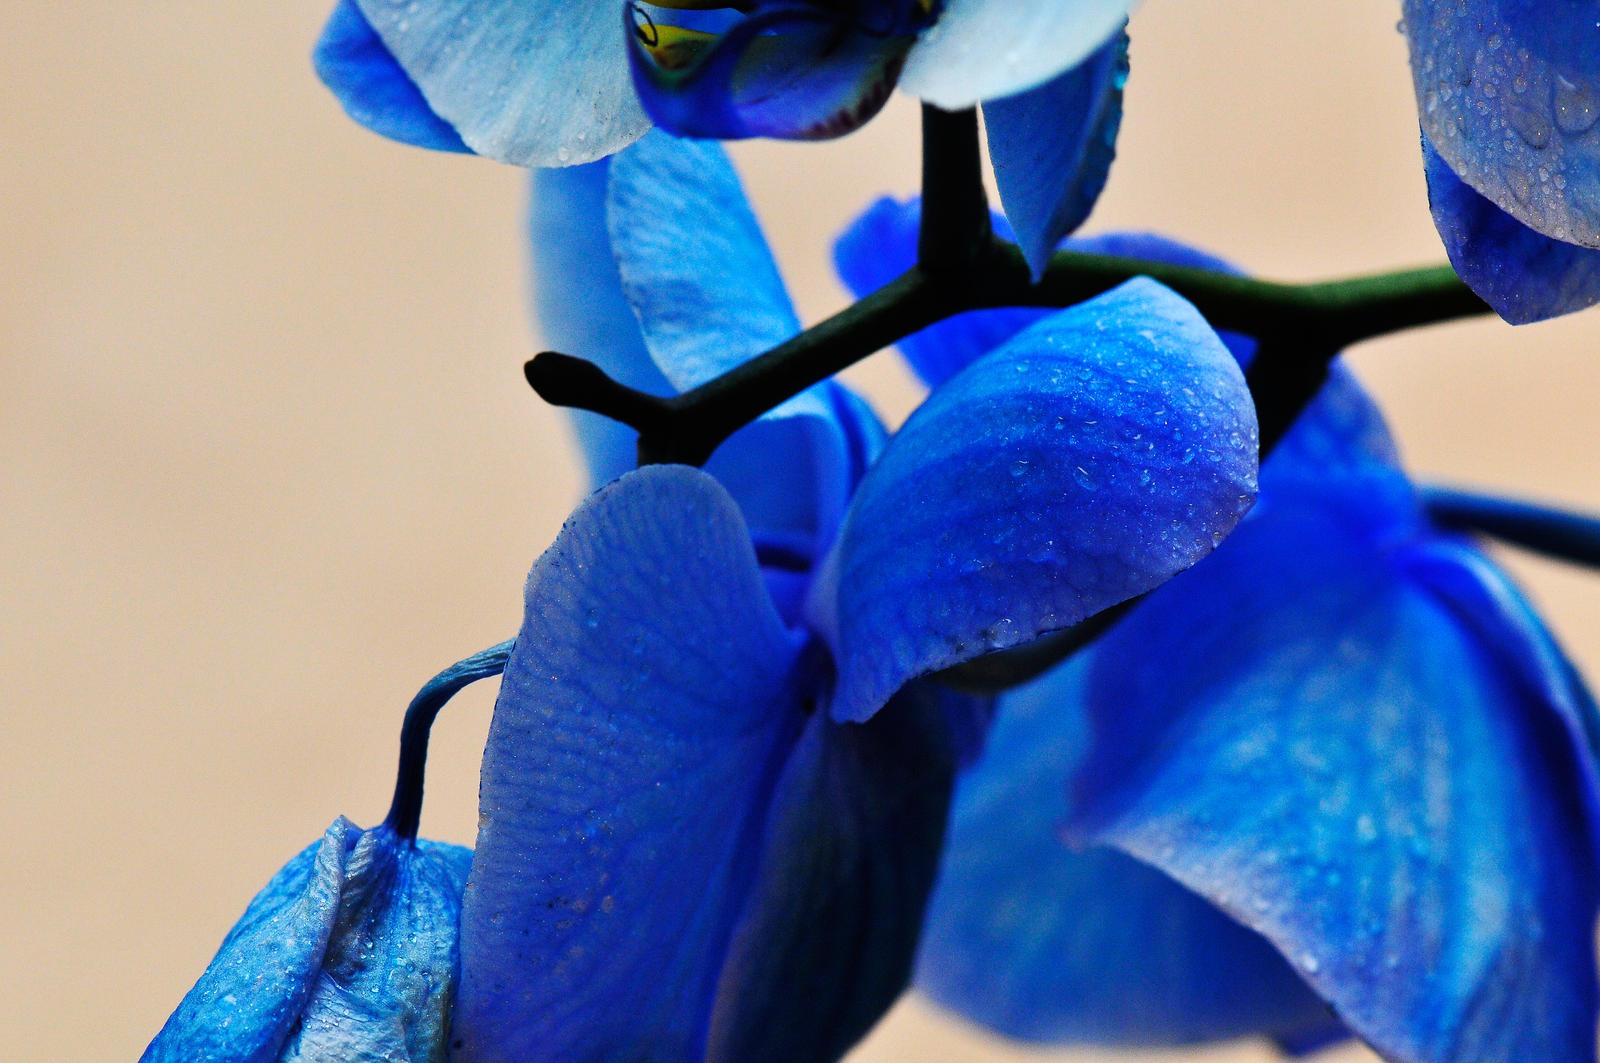 Shades of blue by NB-PhotoArt on deviantART